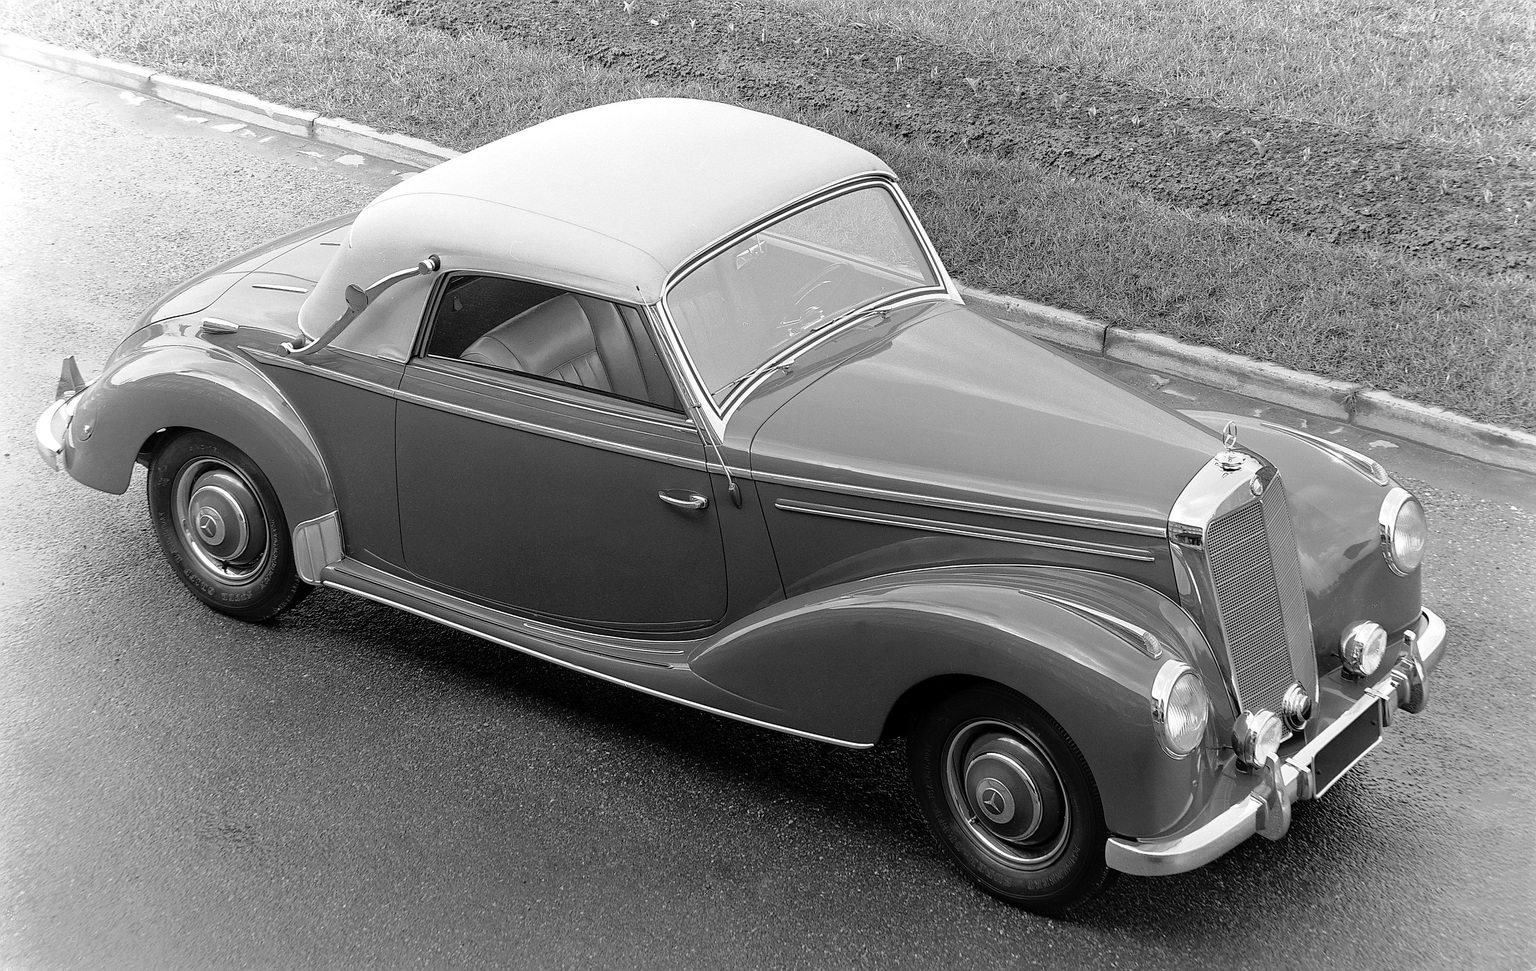 1951 1955 mercedes benz 220 cabriolet a review. Black Bedroom Furniture Sets. Home Design Ideas